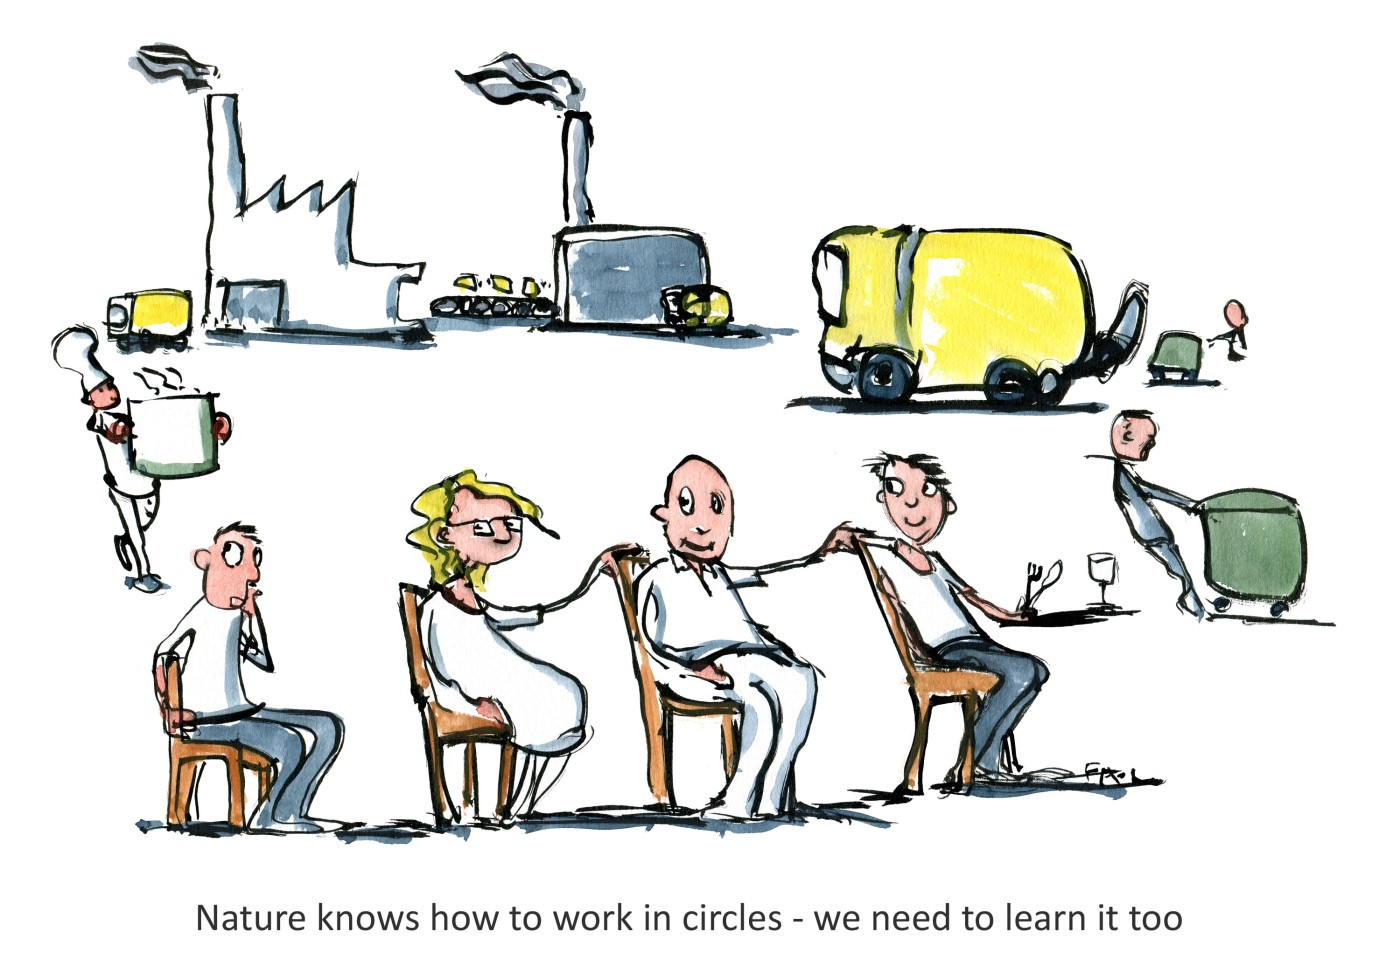 Drawing of people sitting on chairs in a circle part people part waste, part new products. illustration by Frits Ahlefeldt